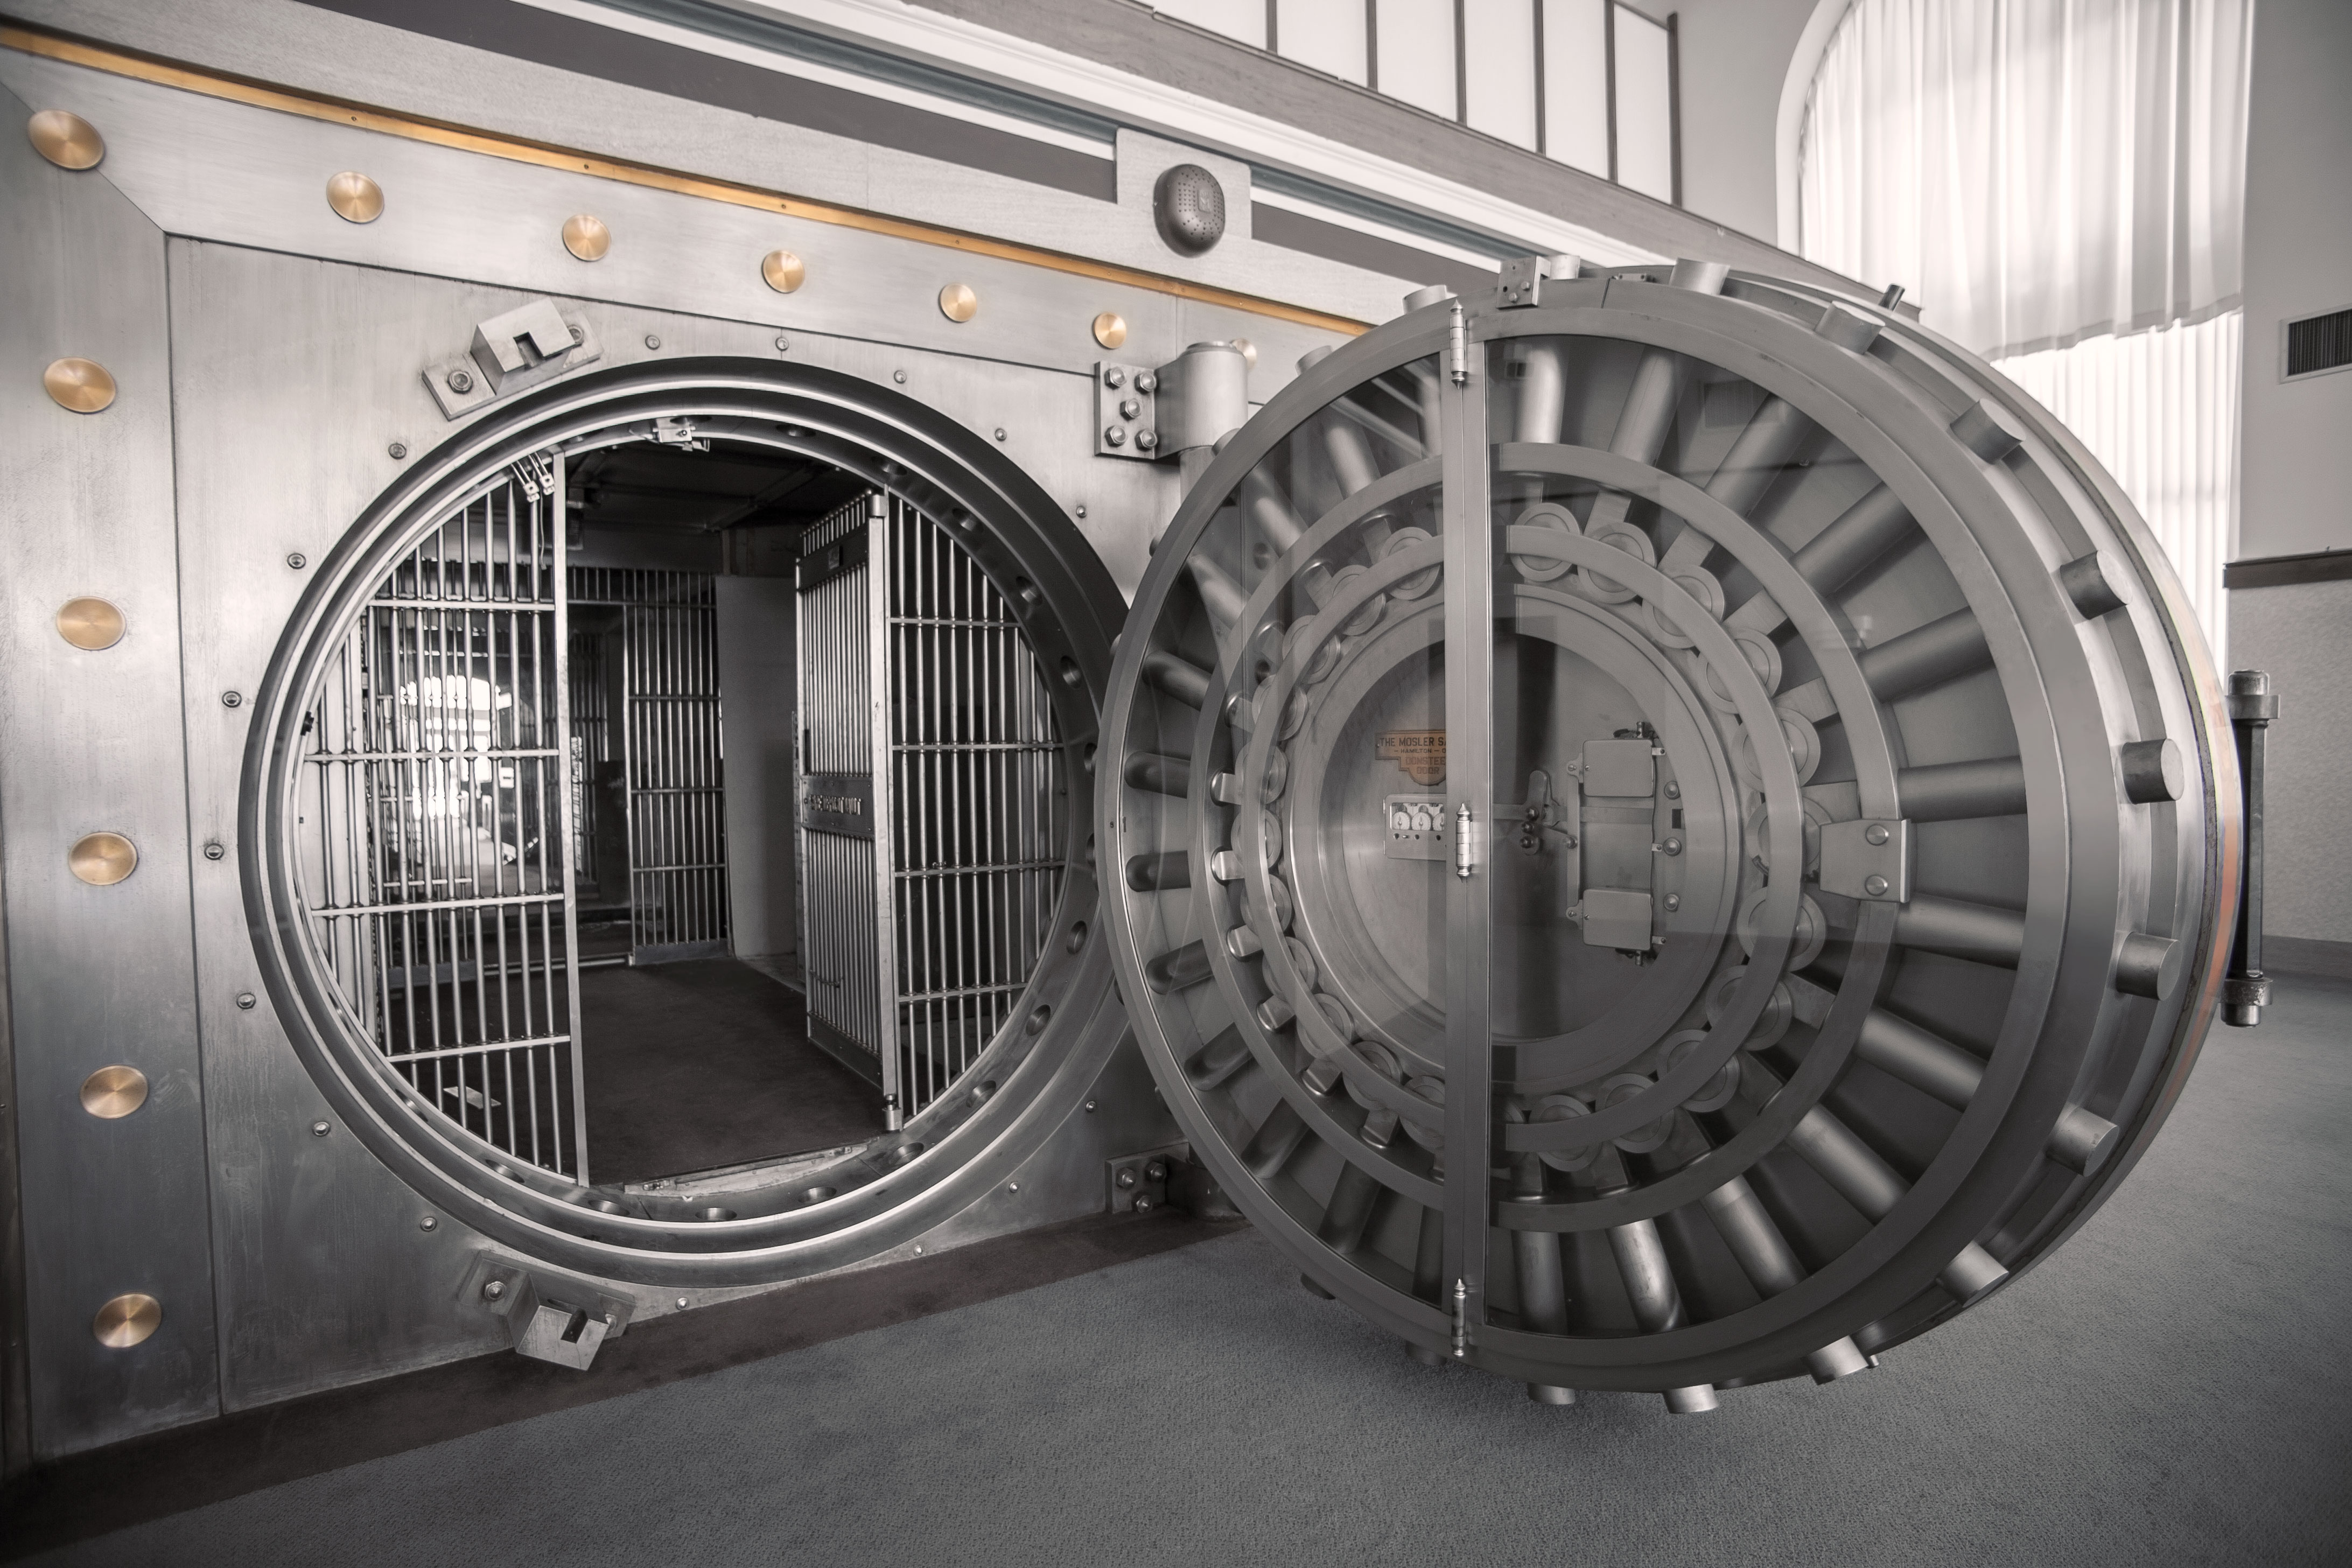 Antique Vault Doors For Sale Exclusively From Brown Safe